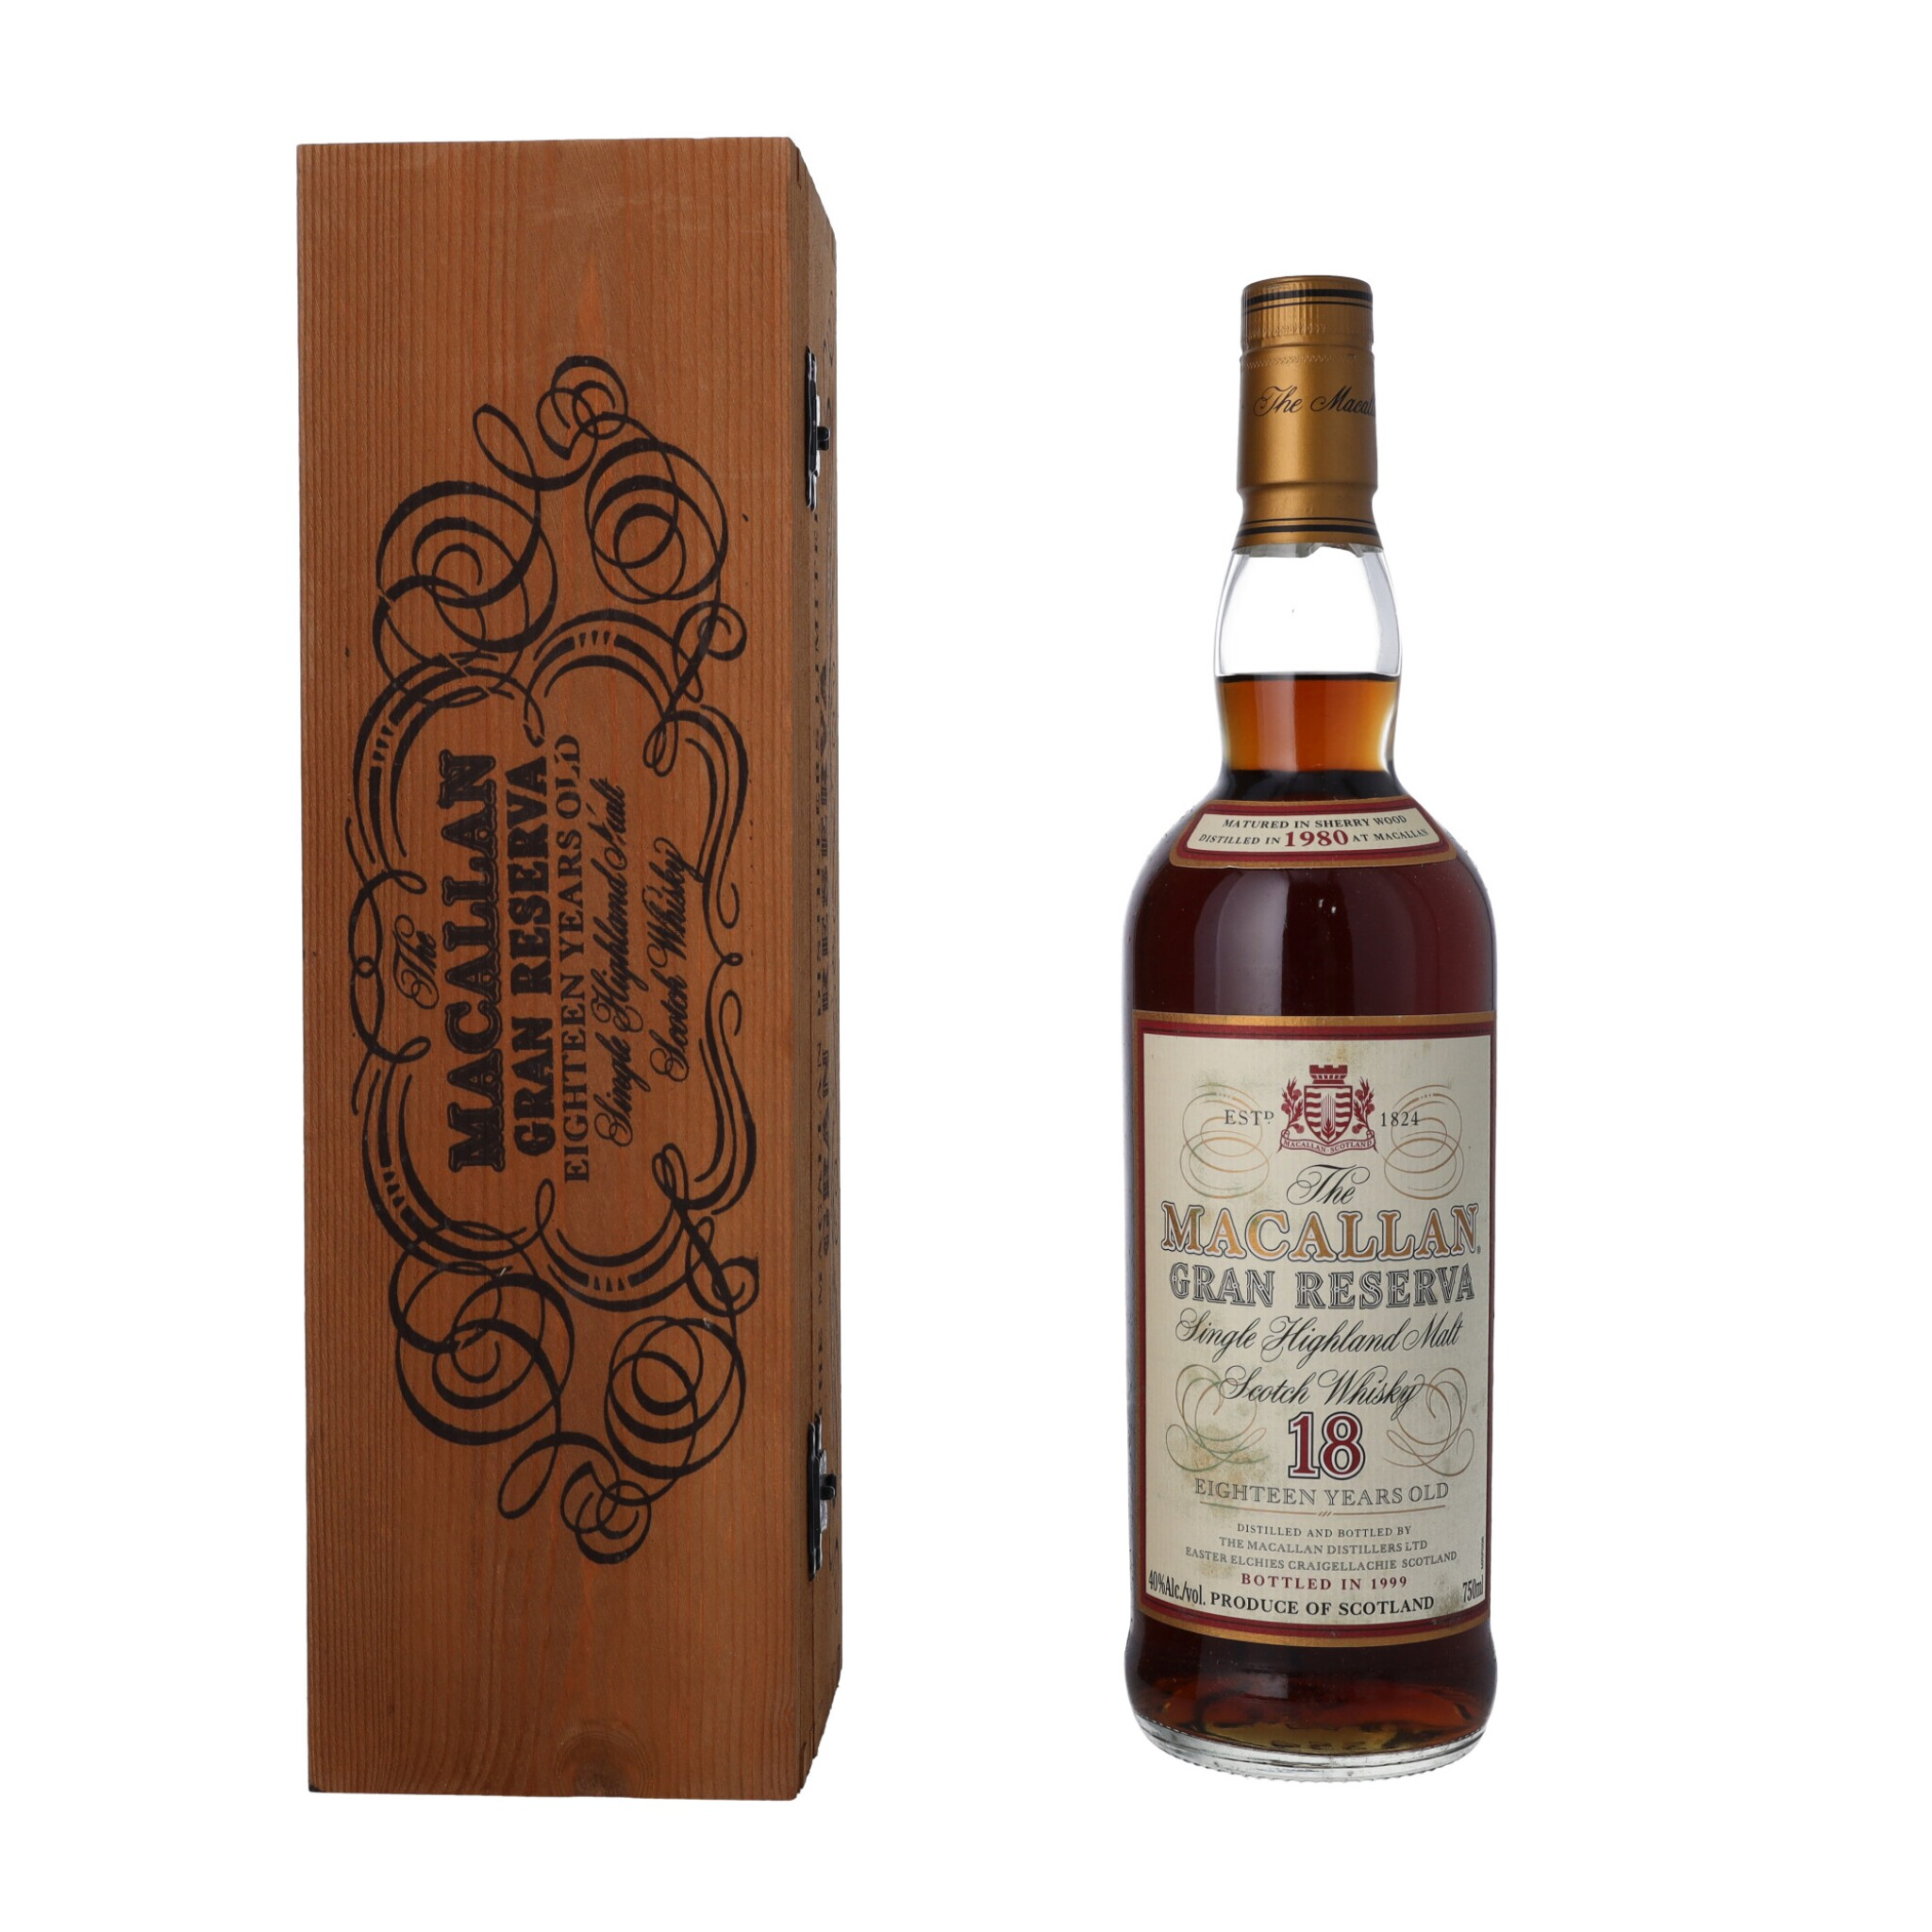 View full screen - View 1 of Lot 17. The Macallan 18 Year Old Gran Reserva 40.0 abv 1980 (1 BT75).